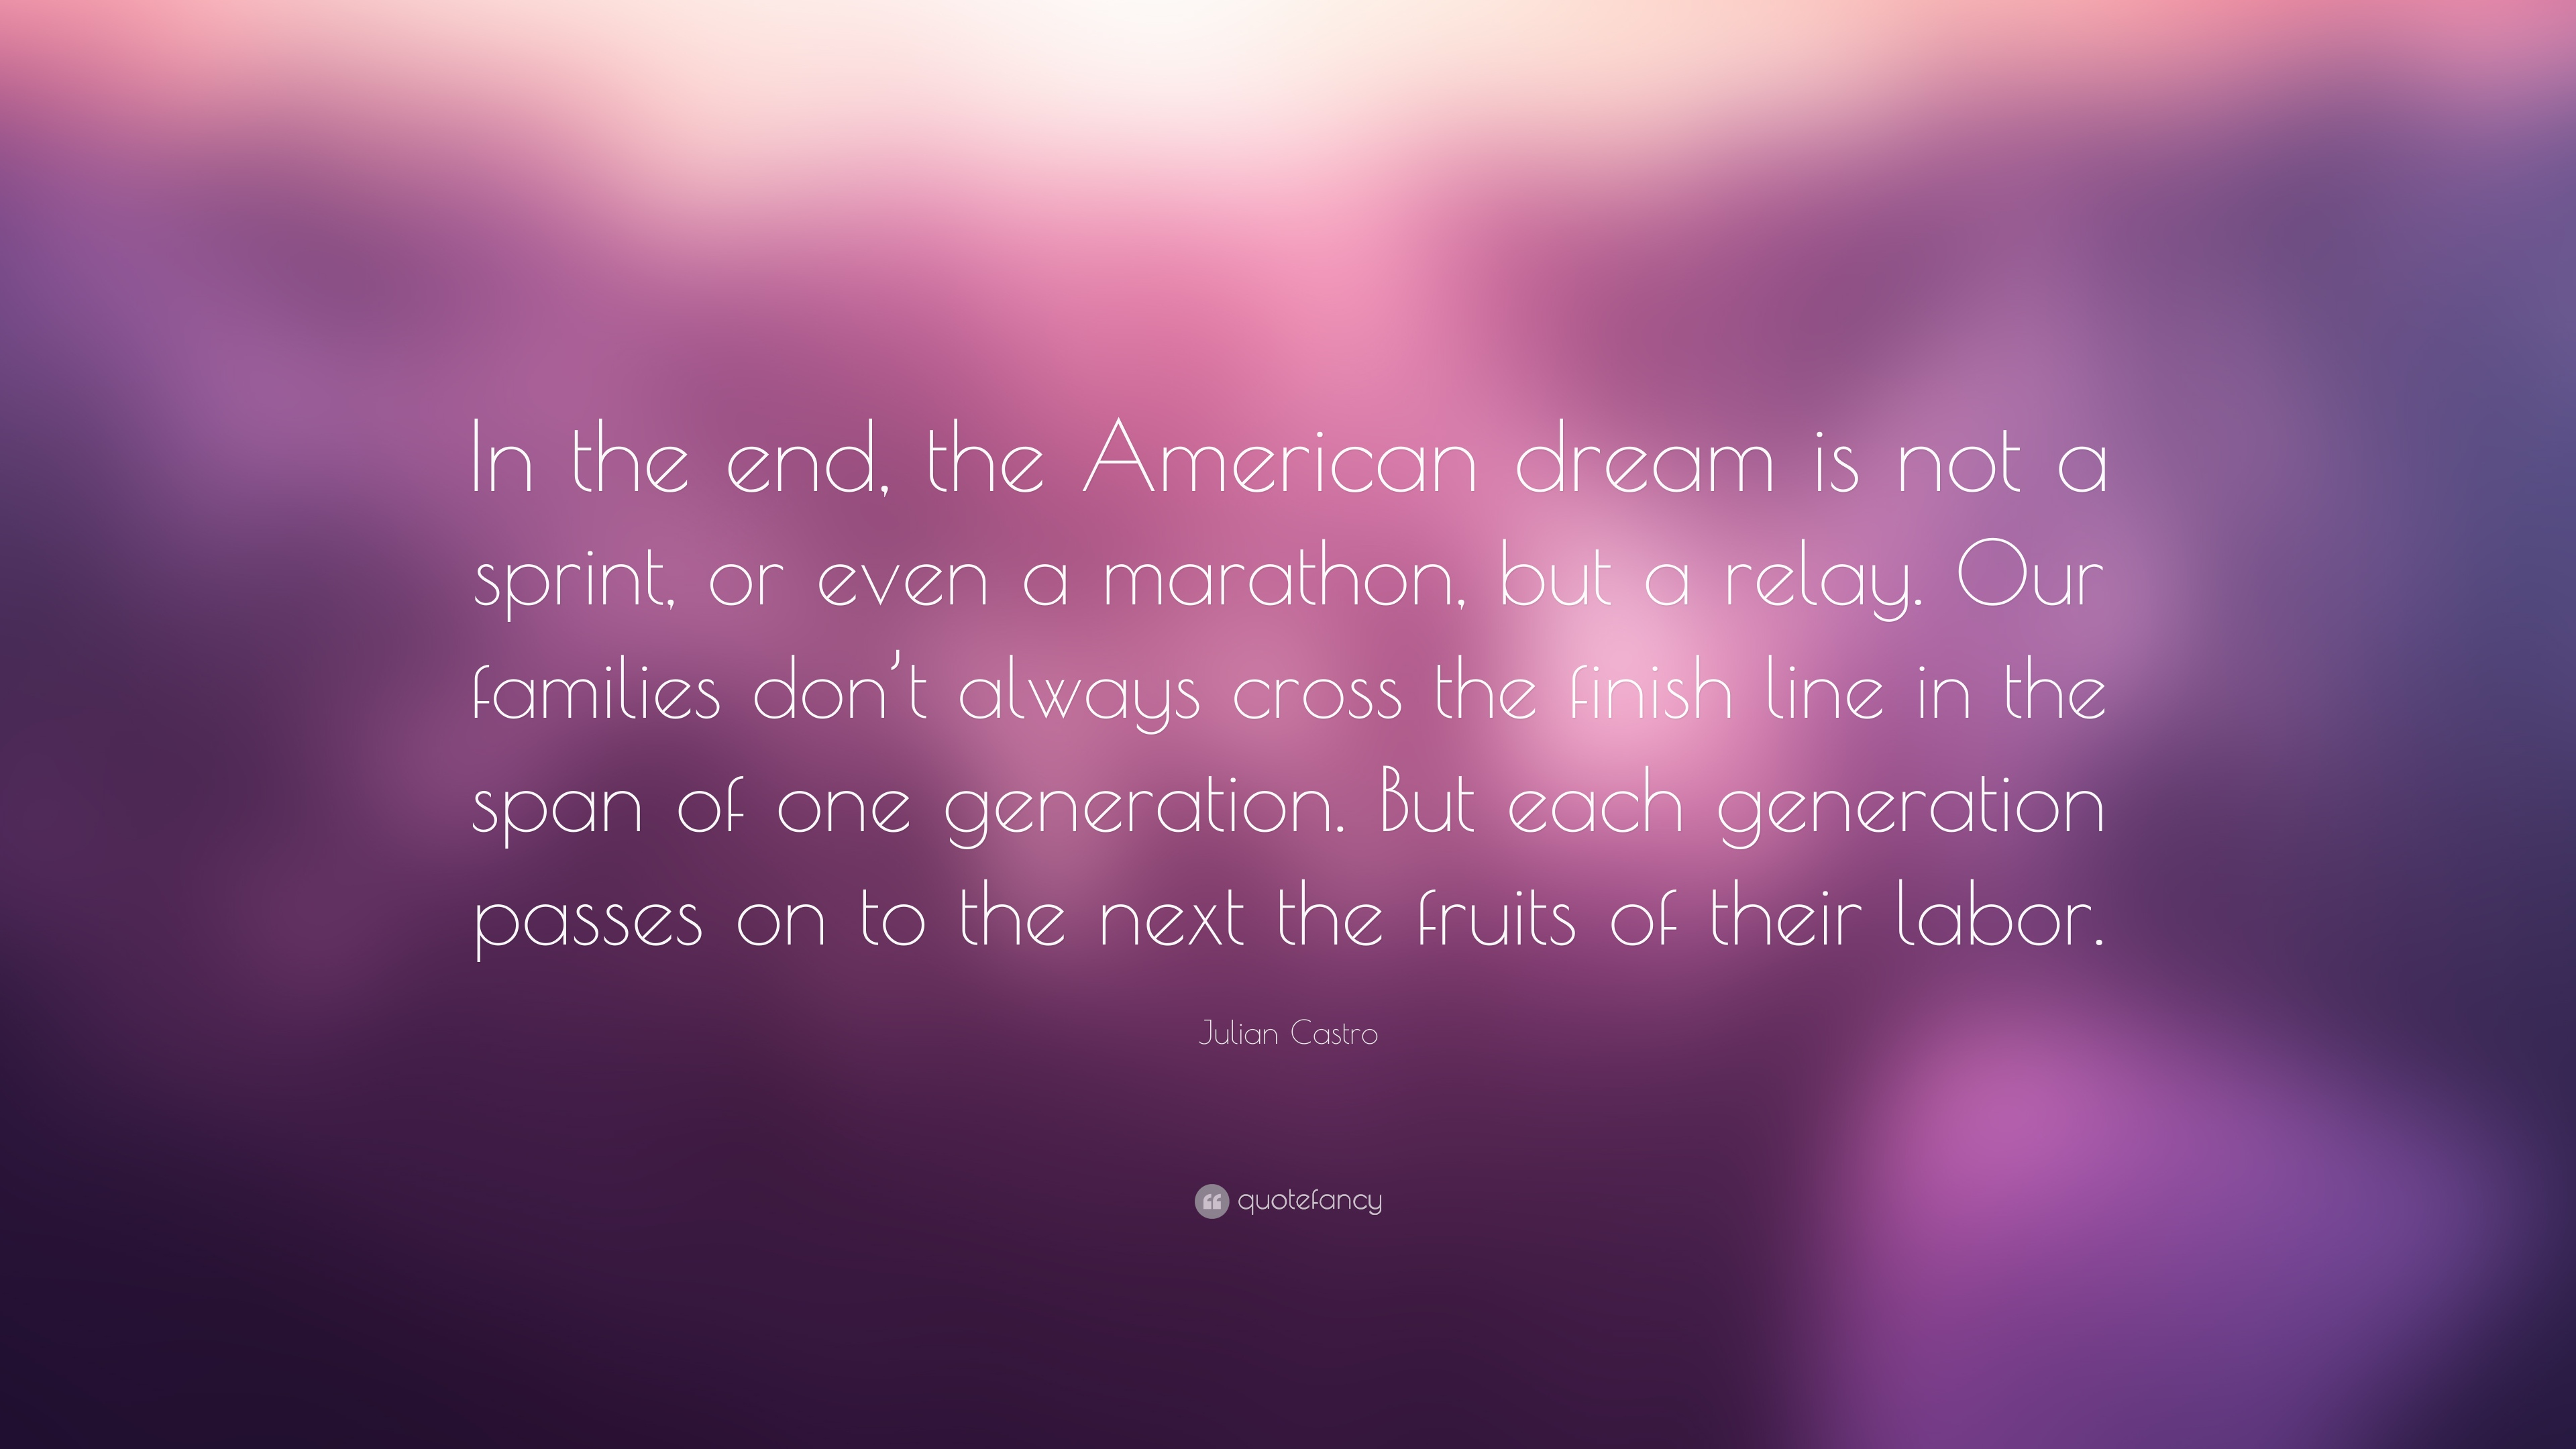 Relay For Life Quotes Julian Castro Quotes 11 Wallpapers  Quotefancy